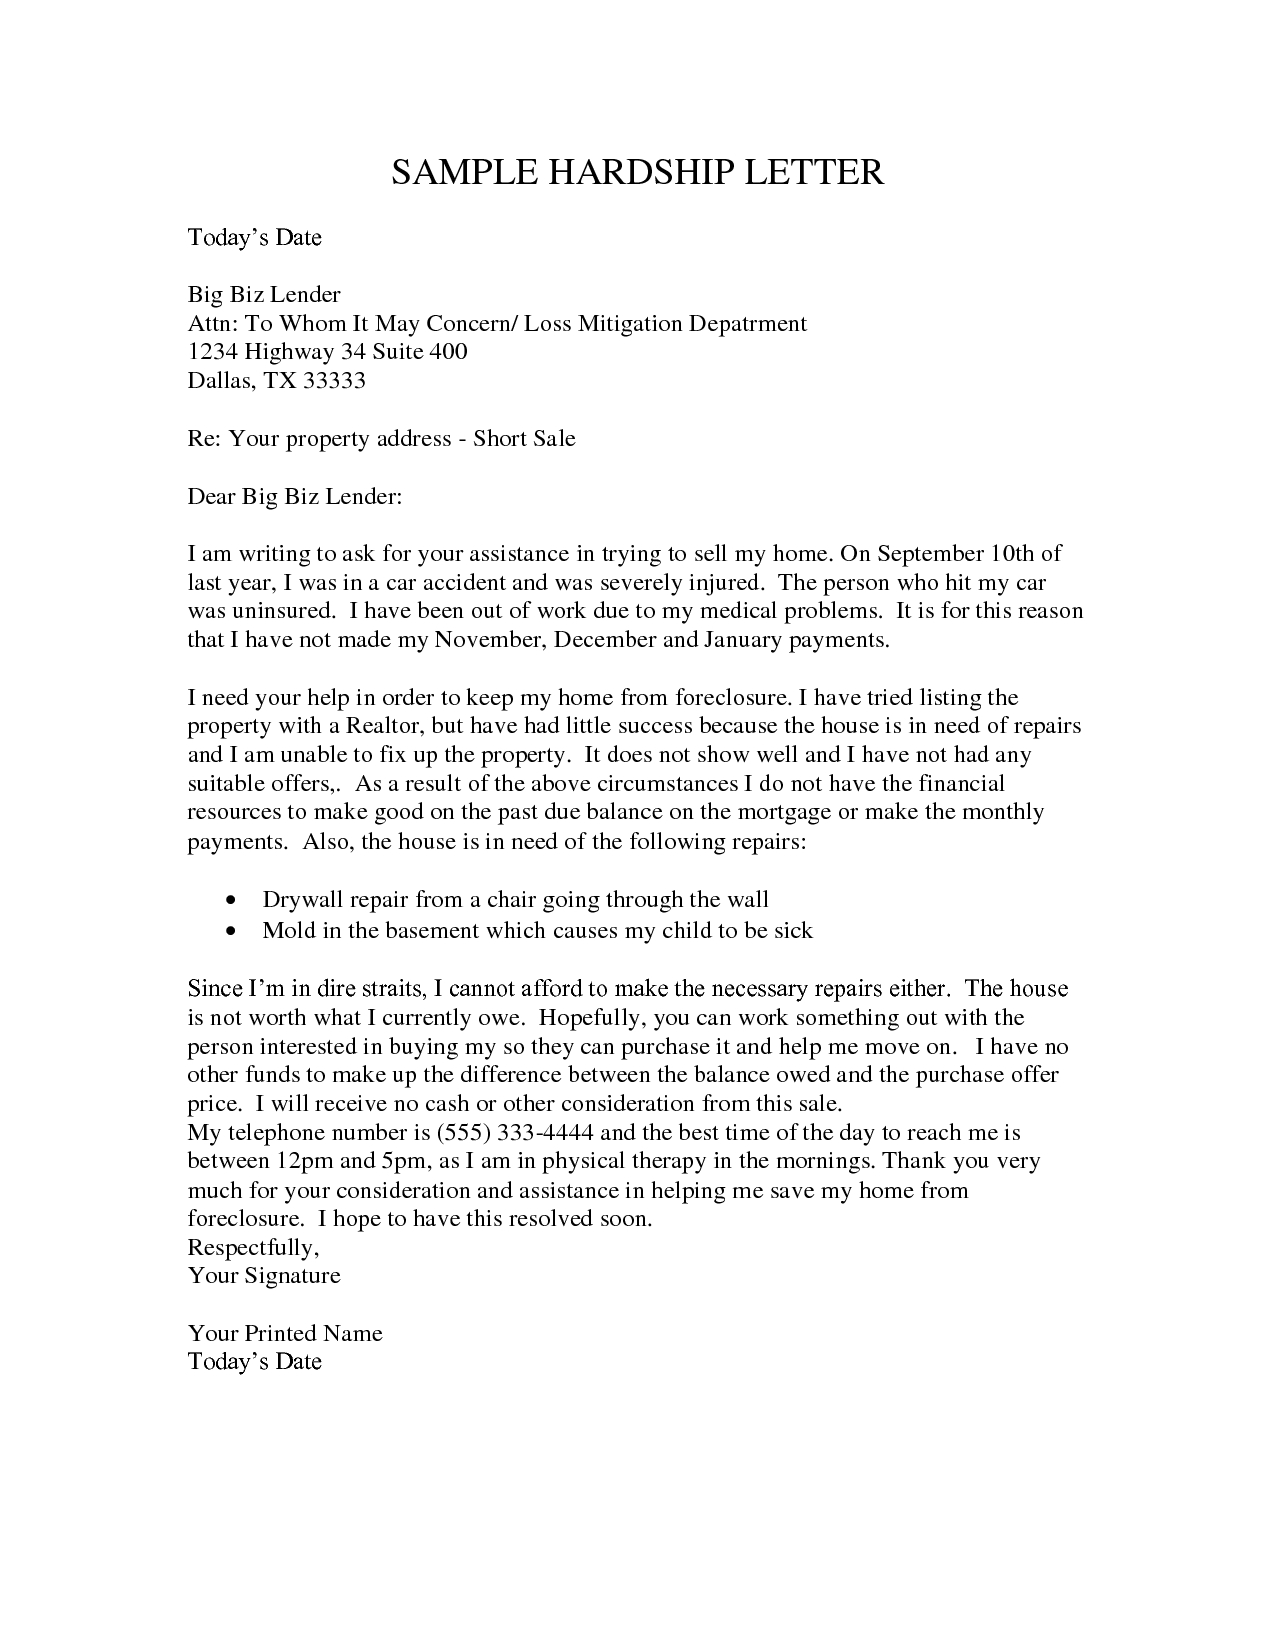 Immigration Hardship Letter Template - How to Write A Hardship Letter for A Short Sale Gallery Letter